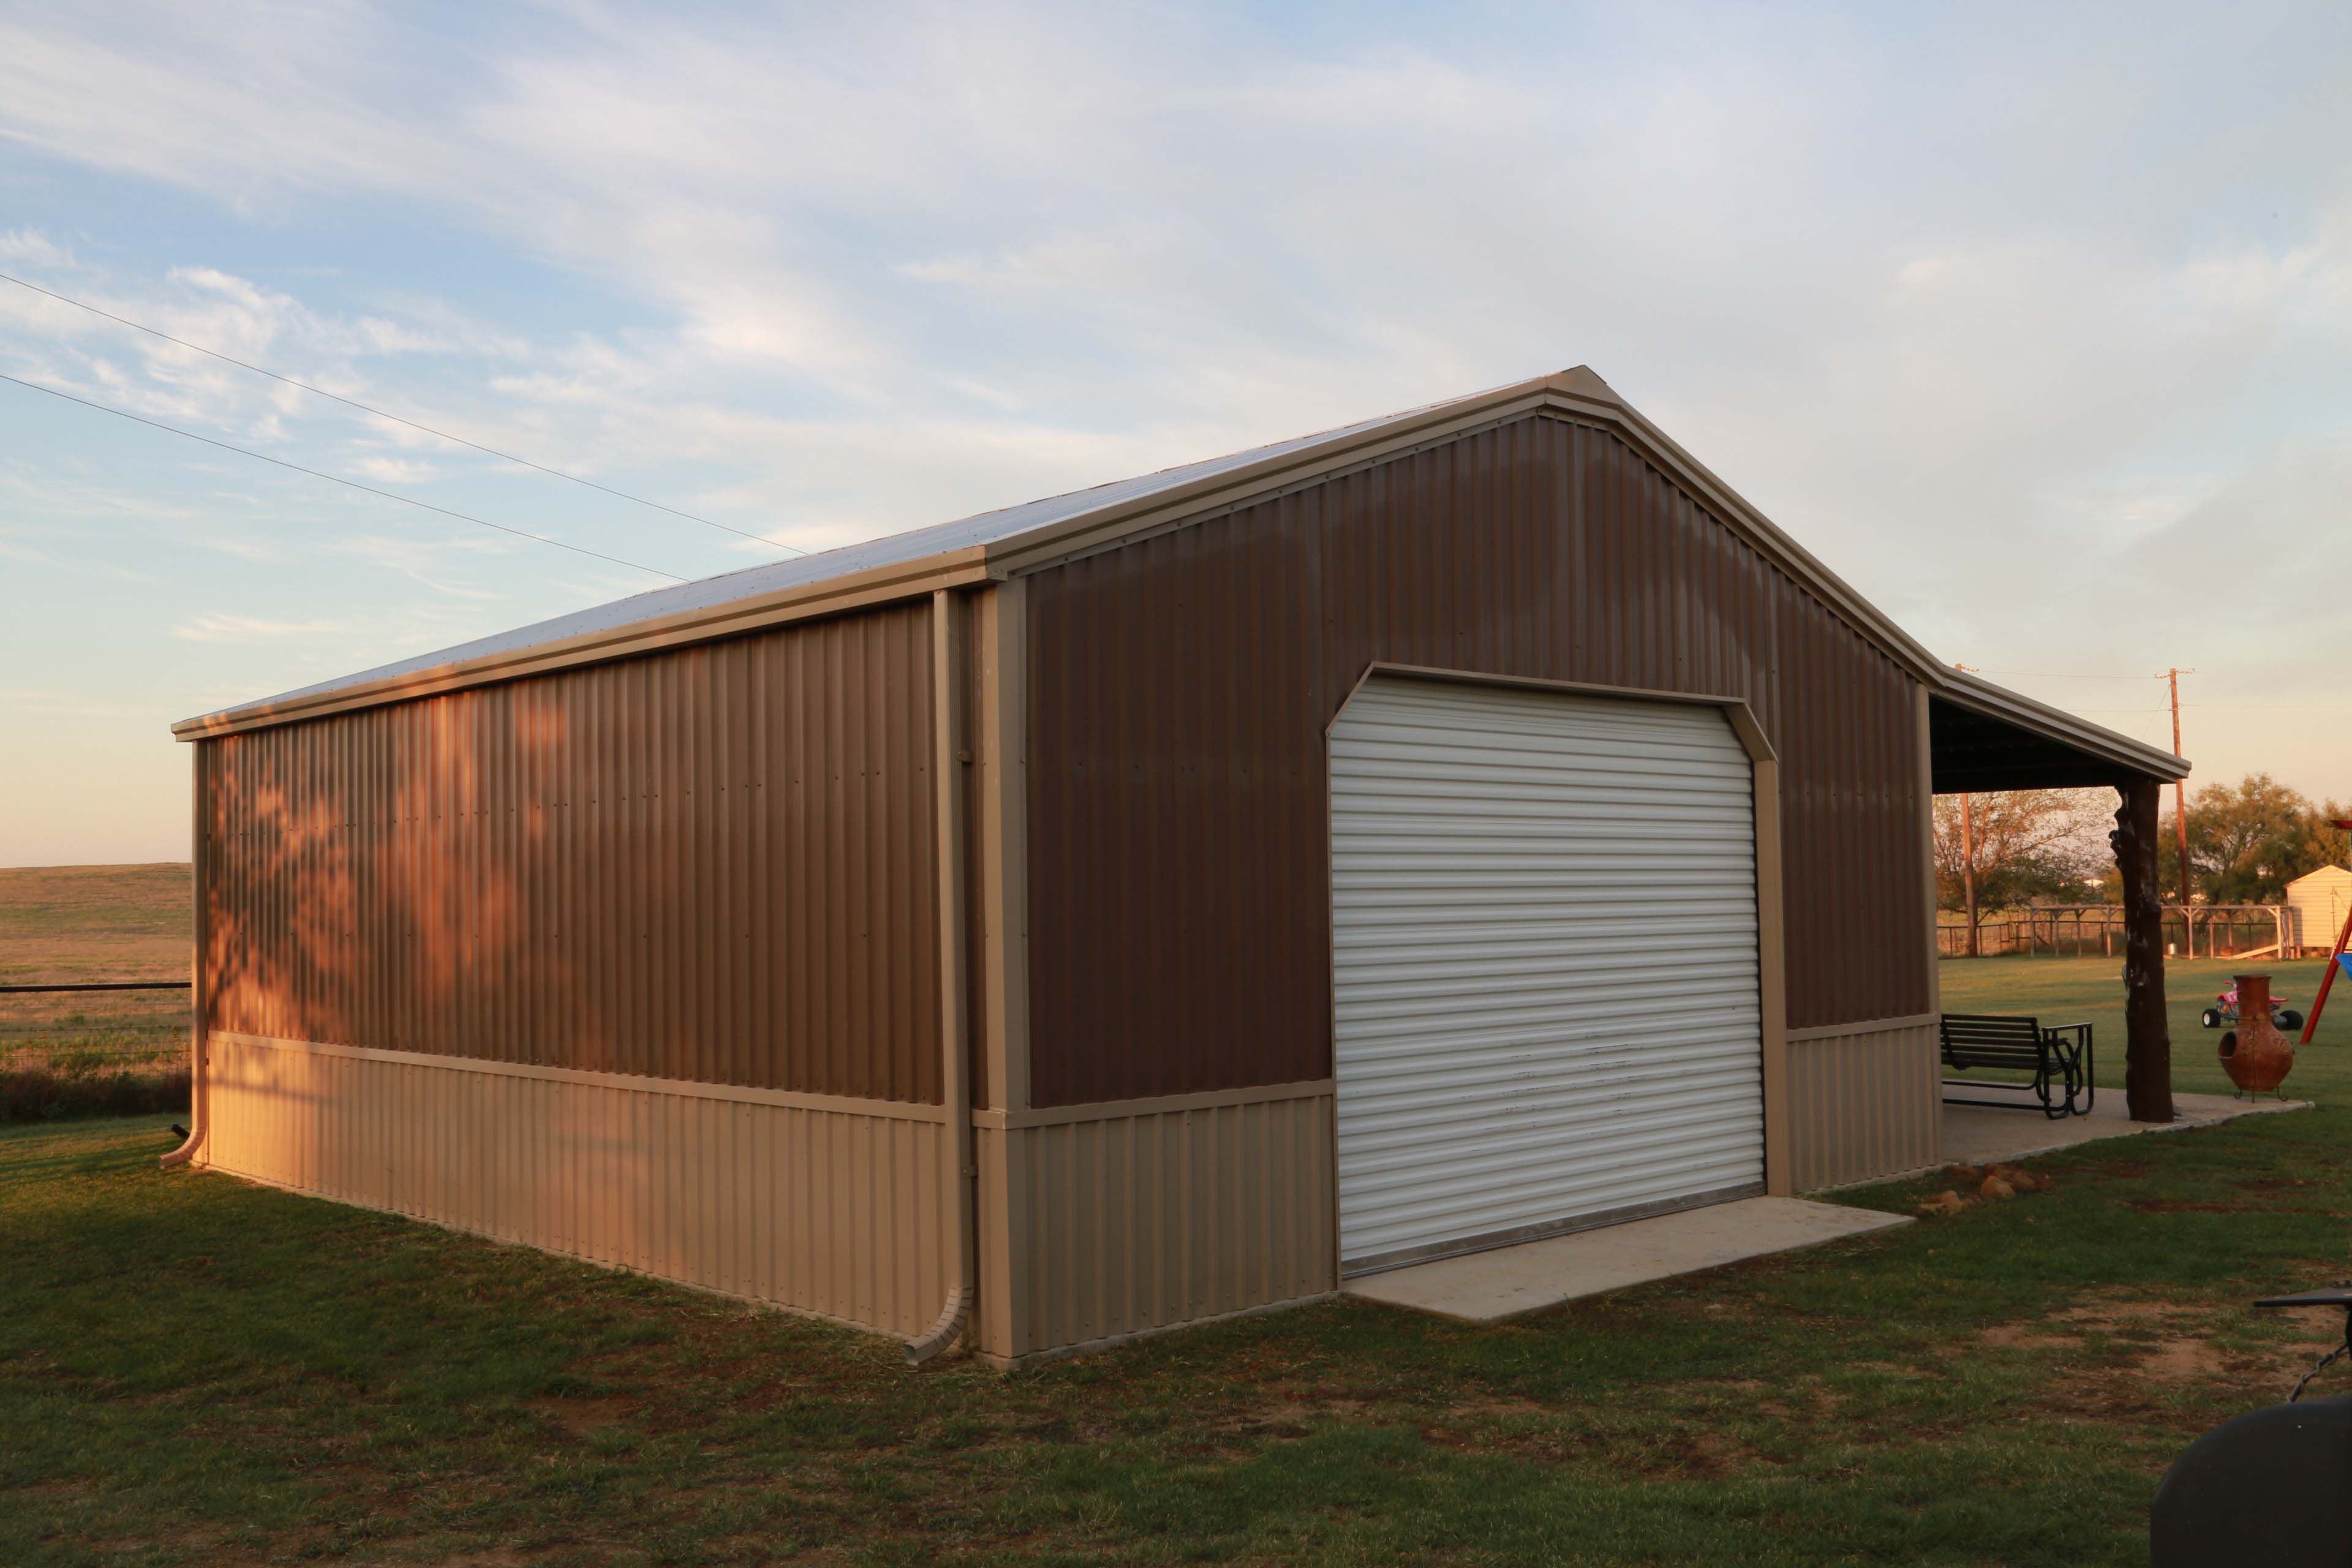 Steel Building Gallery - Category: Custom Building_33 - Image: Choice_33_1  | Mueller Inc | Steel buildings, Metal buildings, Architecture bathroom